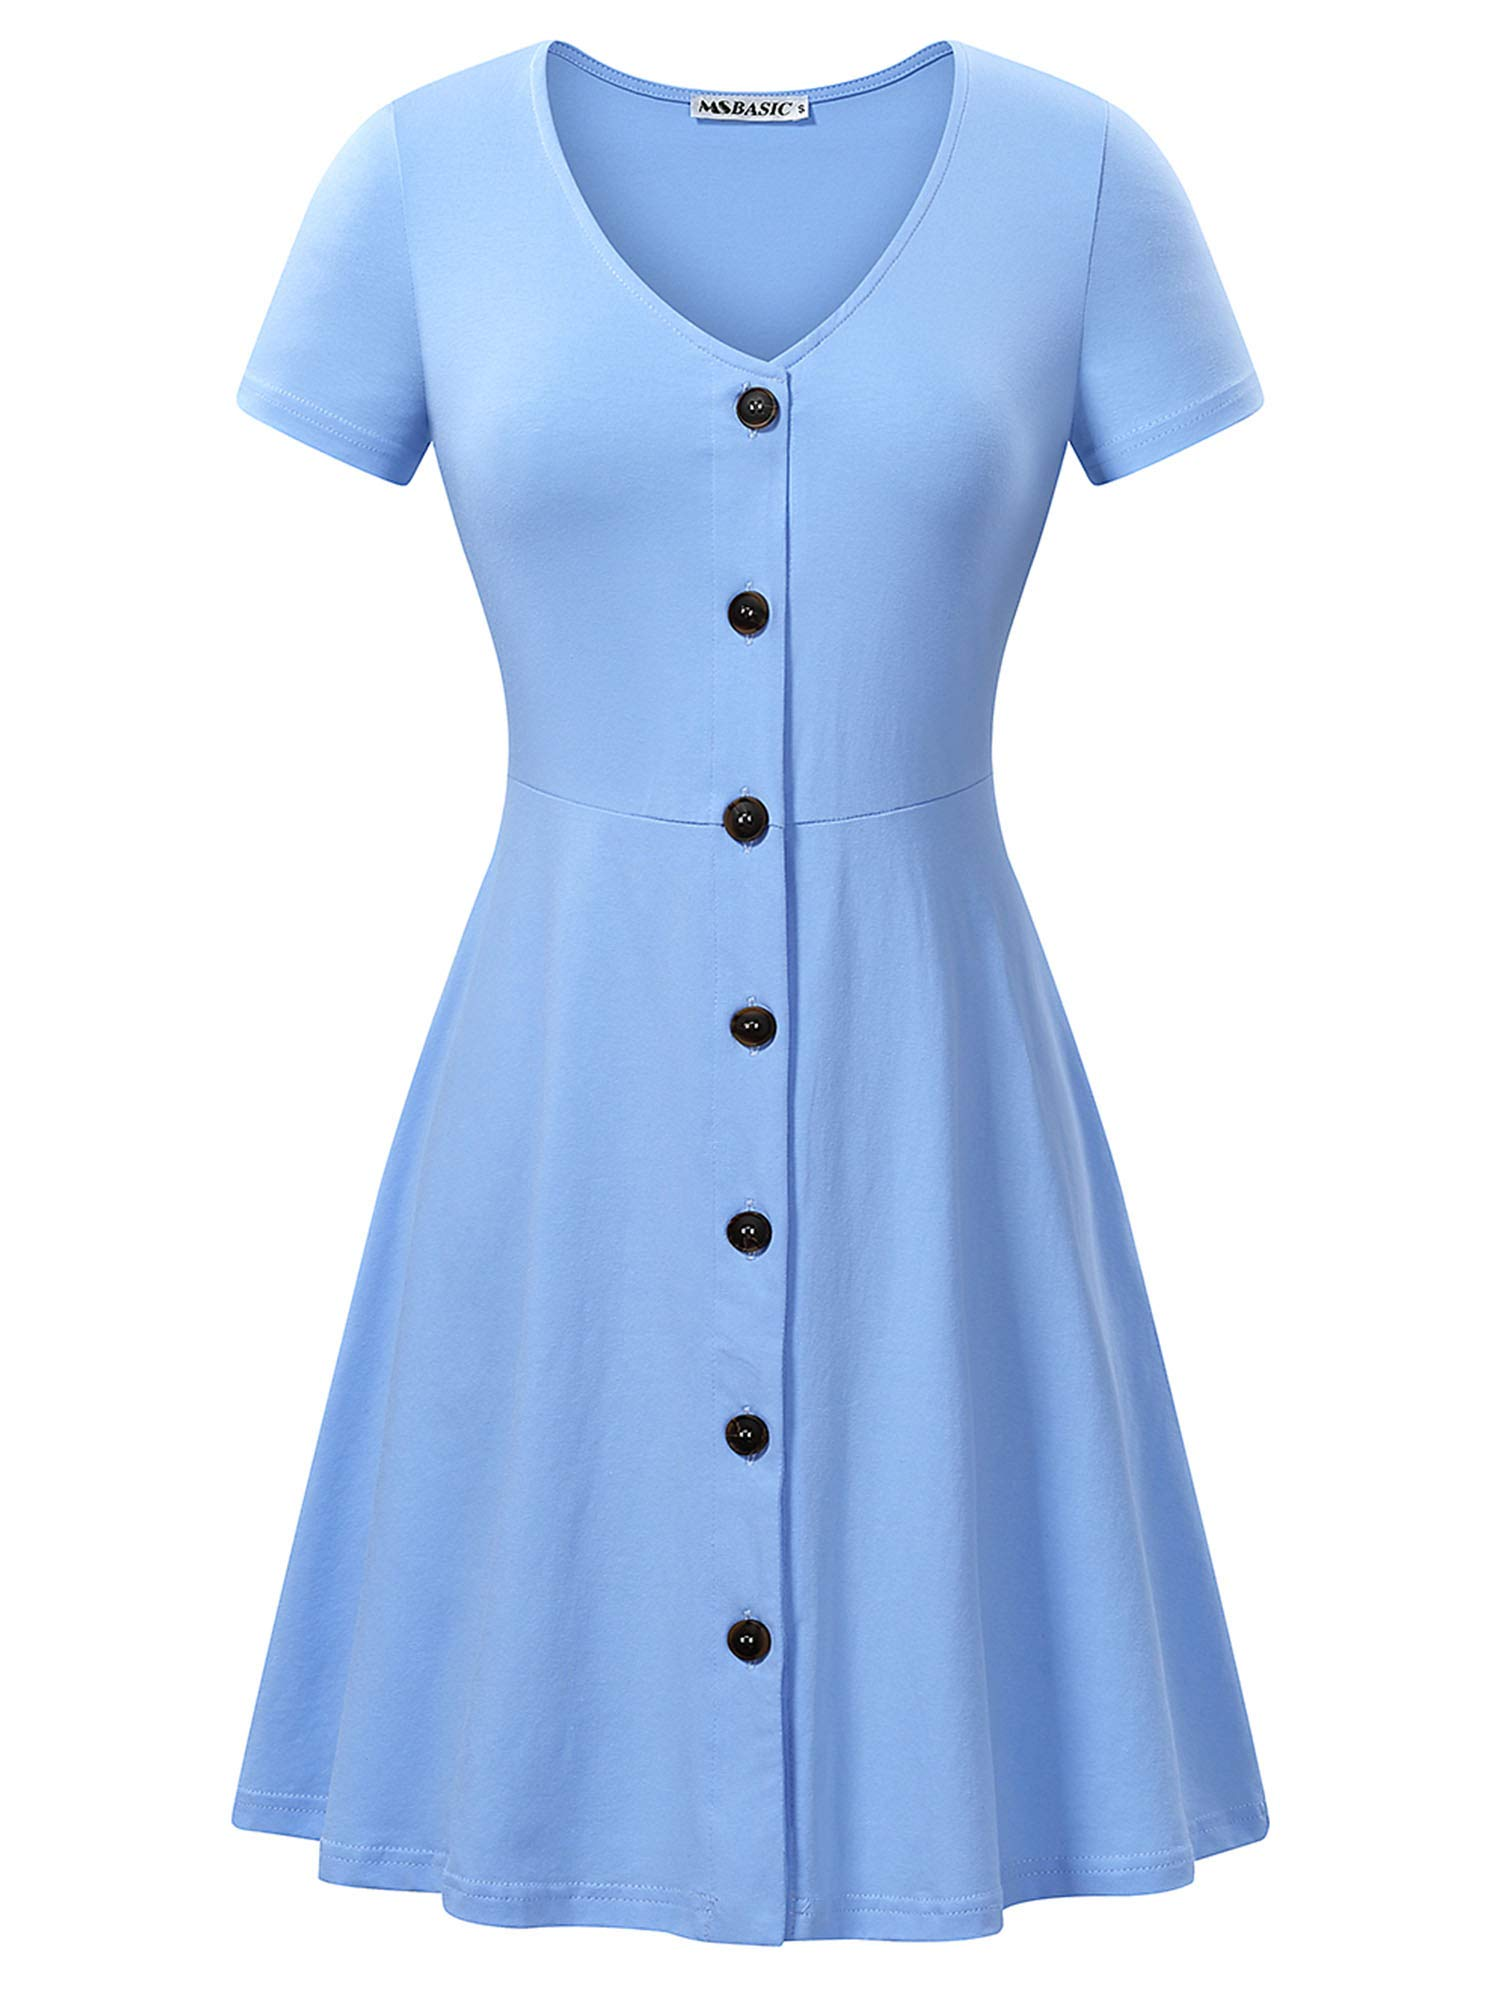 Available at Amazon: MSBASIC Women's Summer Casual Short Sleeve Button Down V Neck Dress